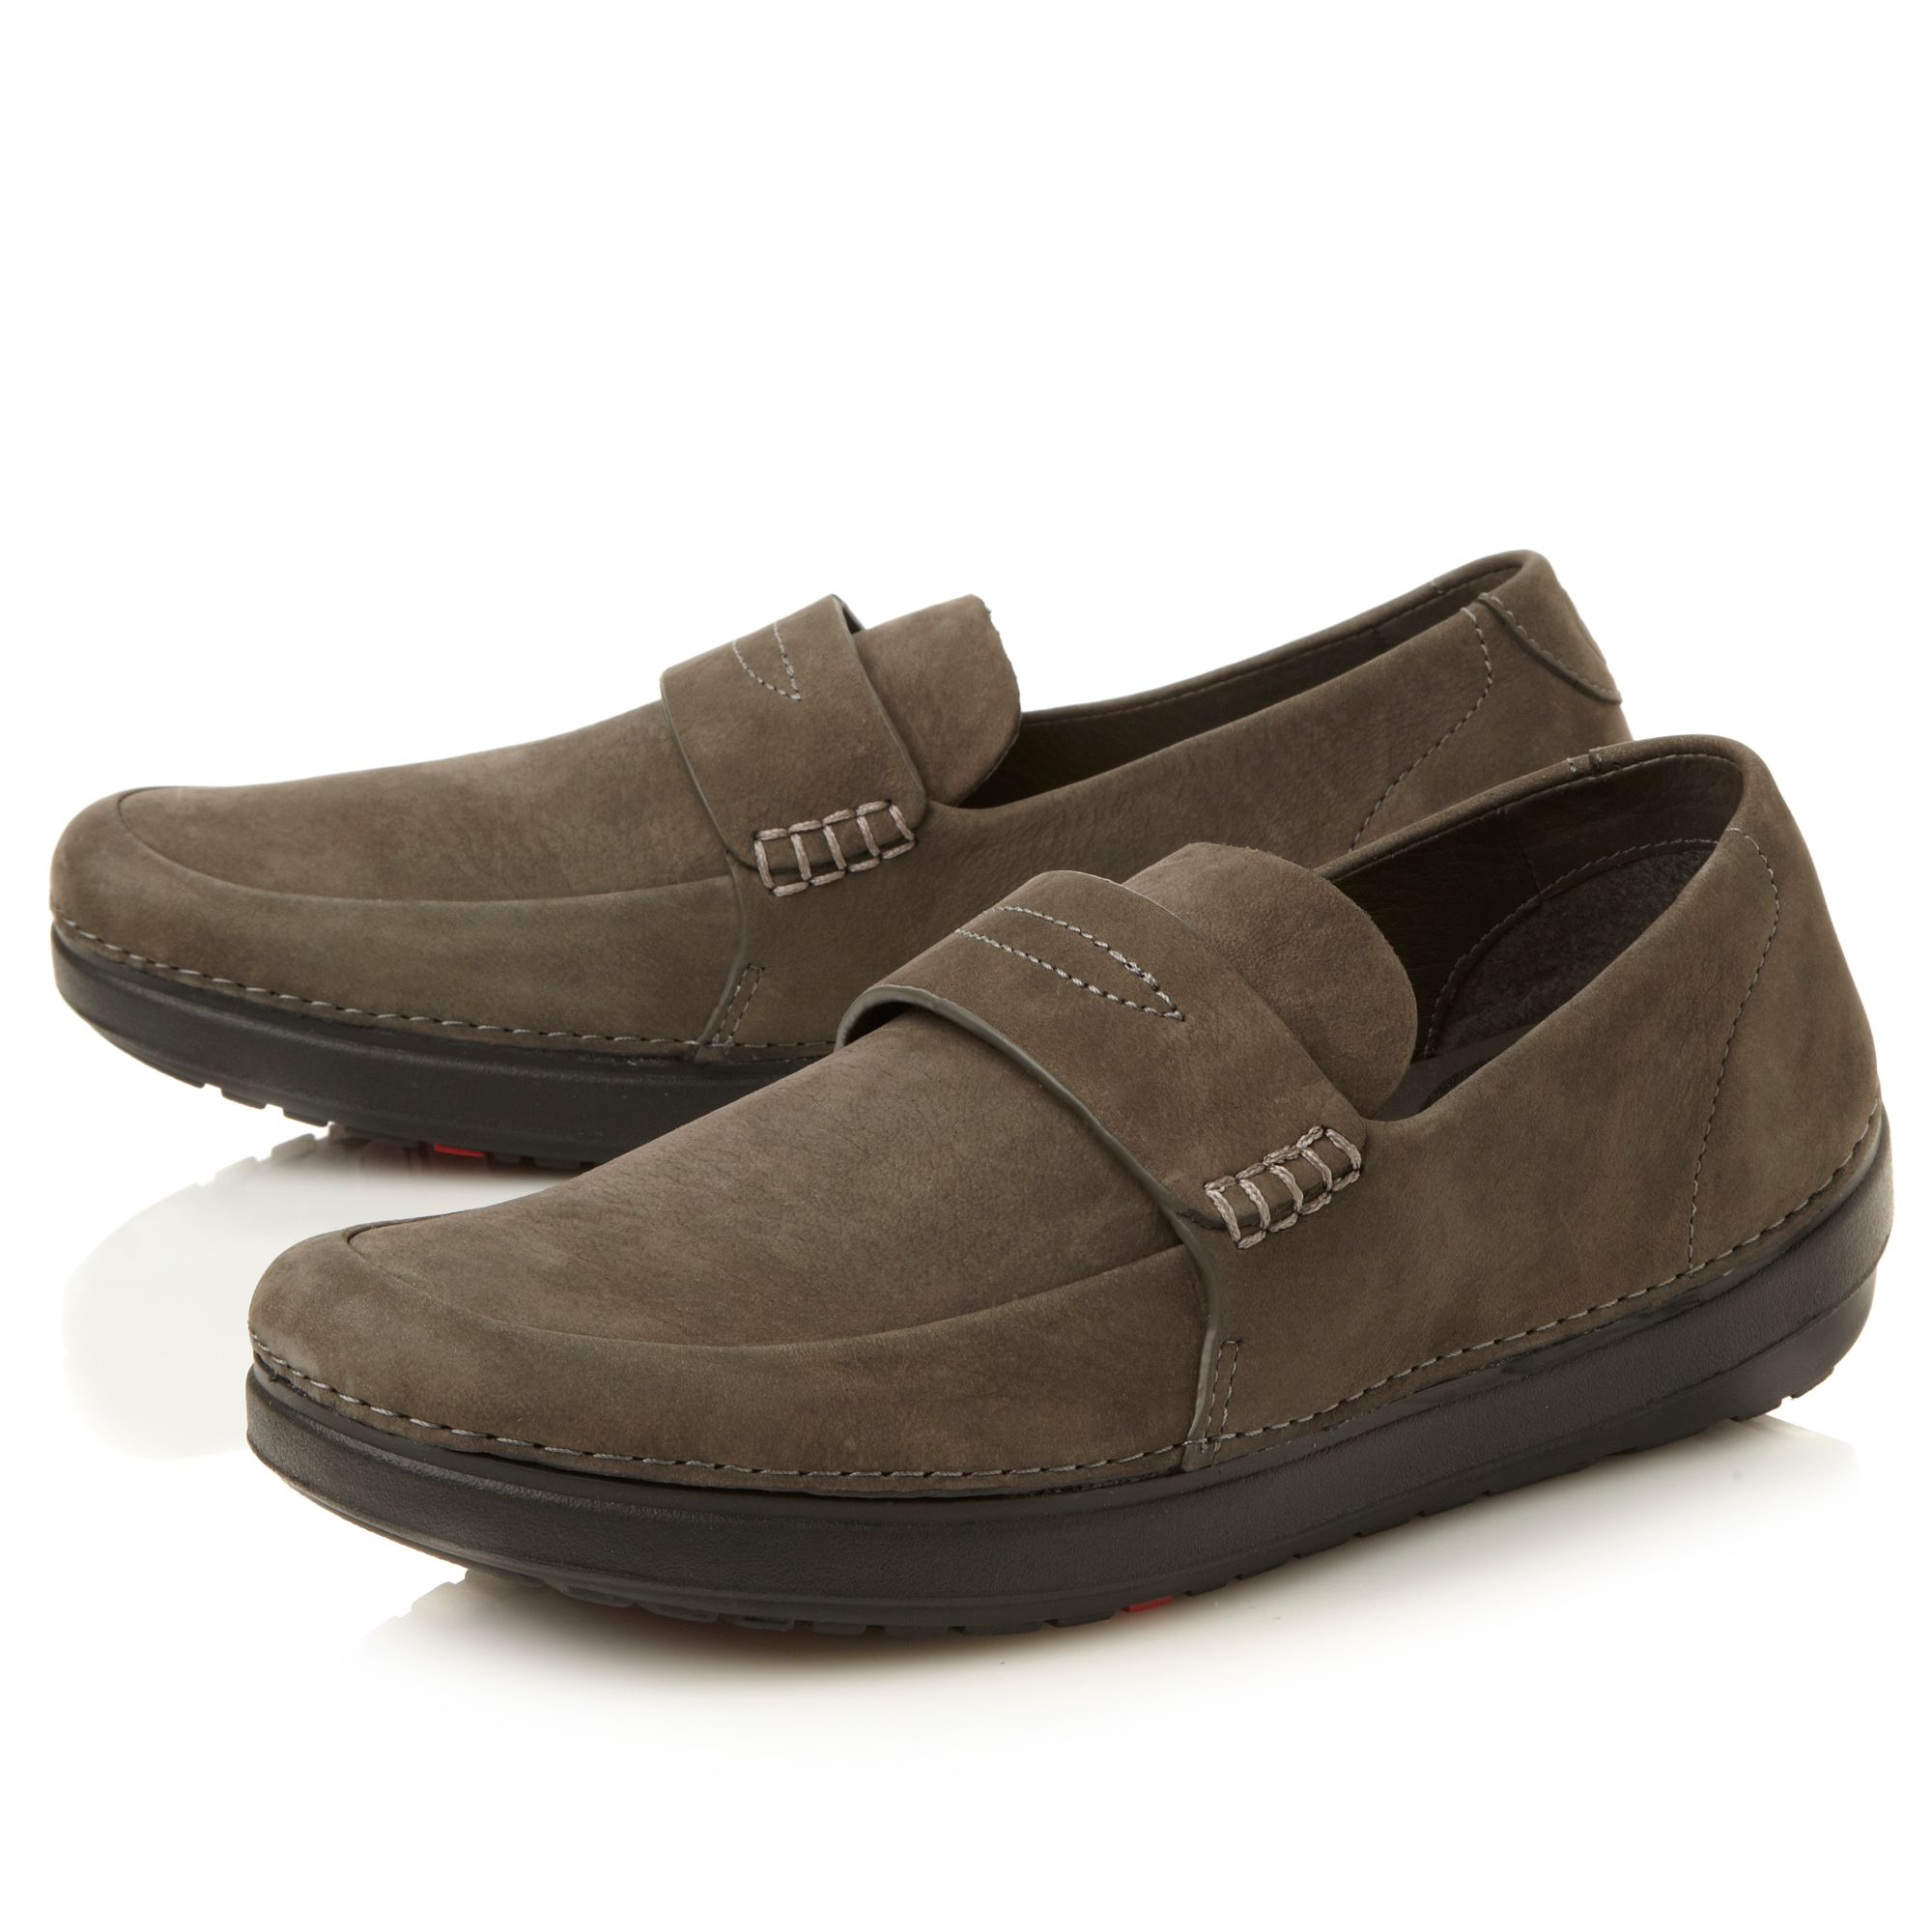 John Lobb Shoes >> Lyst - Fitflop Flex Loafer Casual Loafer in Brown for Men